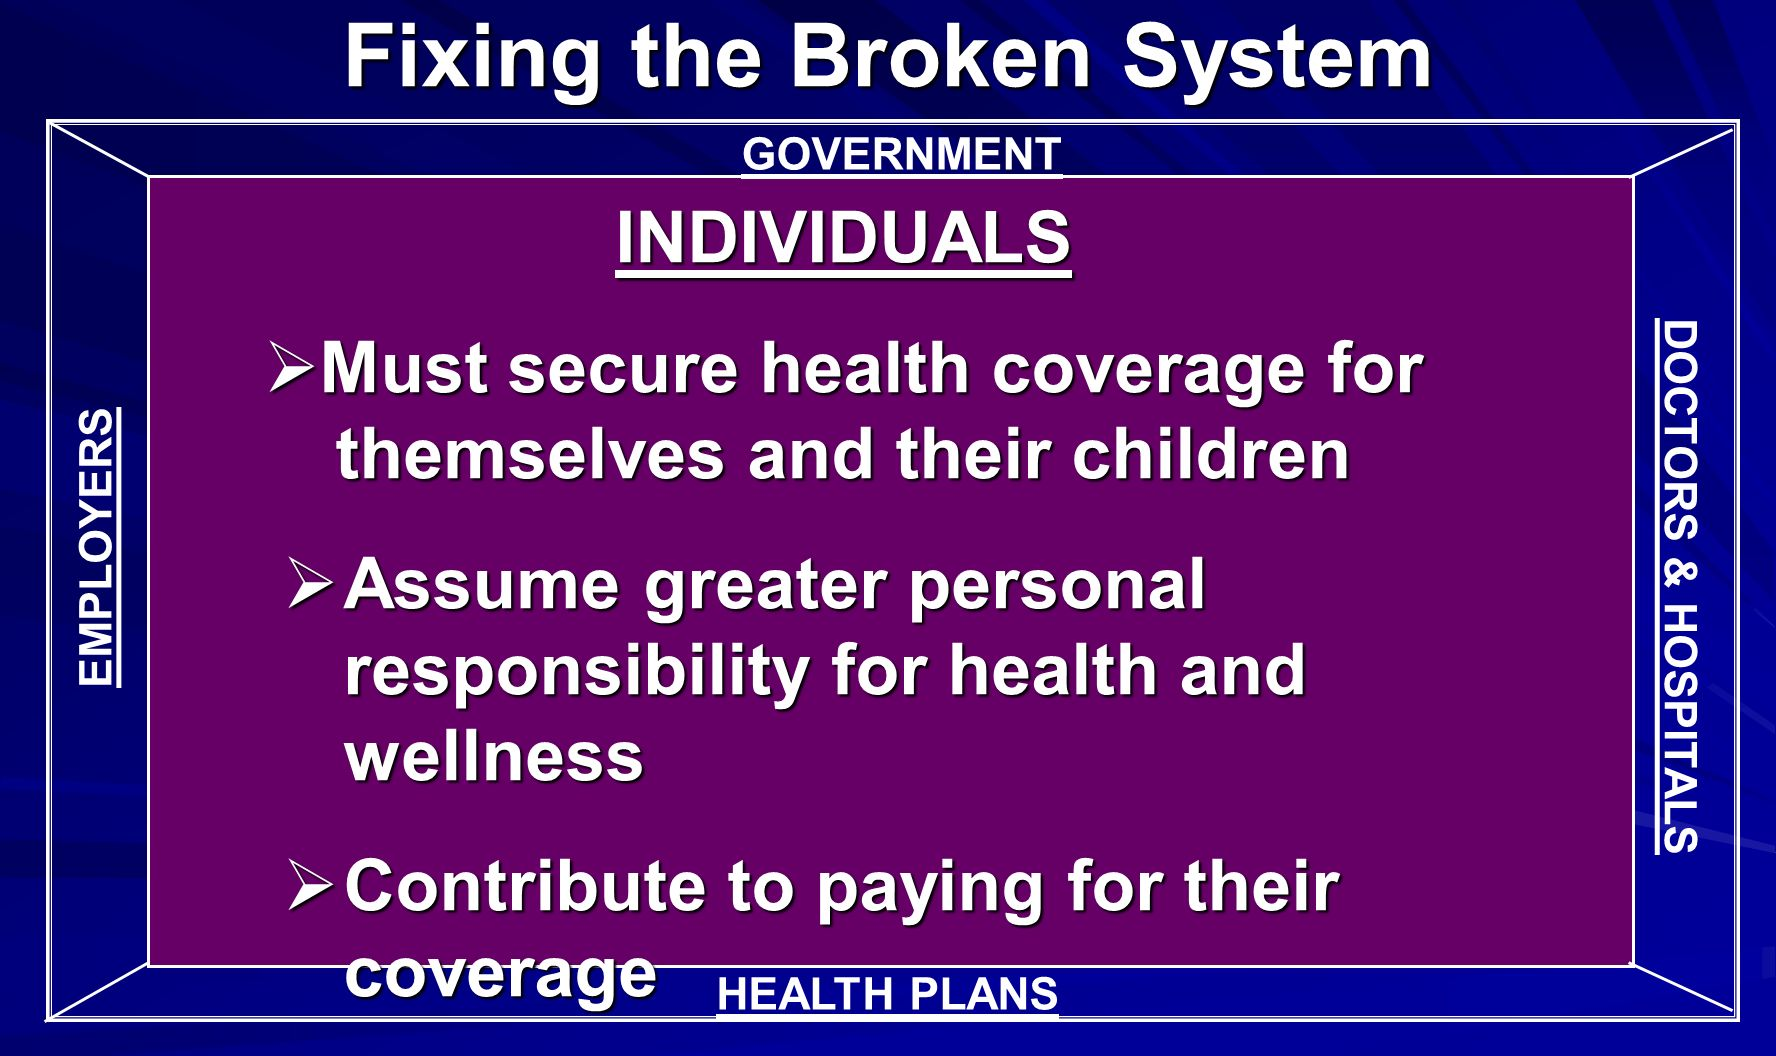 GOVERNMENT INDIVIDUALS Must secure health coverage for themselves and their children Must secure health coverage for themselves and their children Assume greater personal responsibility for health and wellness Assume greater personal responsibility for health and wellness Contribute to paying for their coverage Contribute to paying for their coverage DOCTORS & HOSPITALS Fixing the Broken System HEALTH PLANS EMPLOYERS